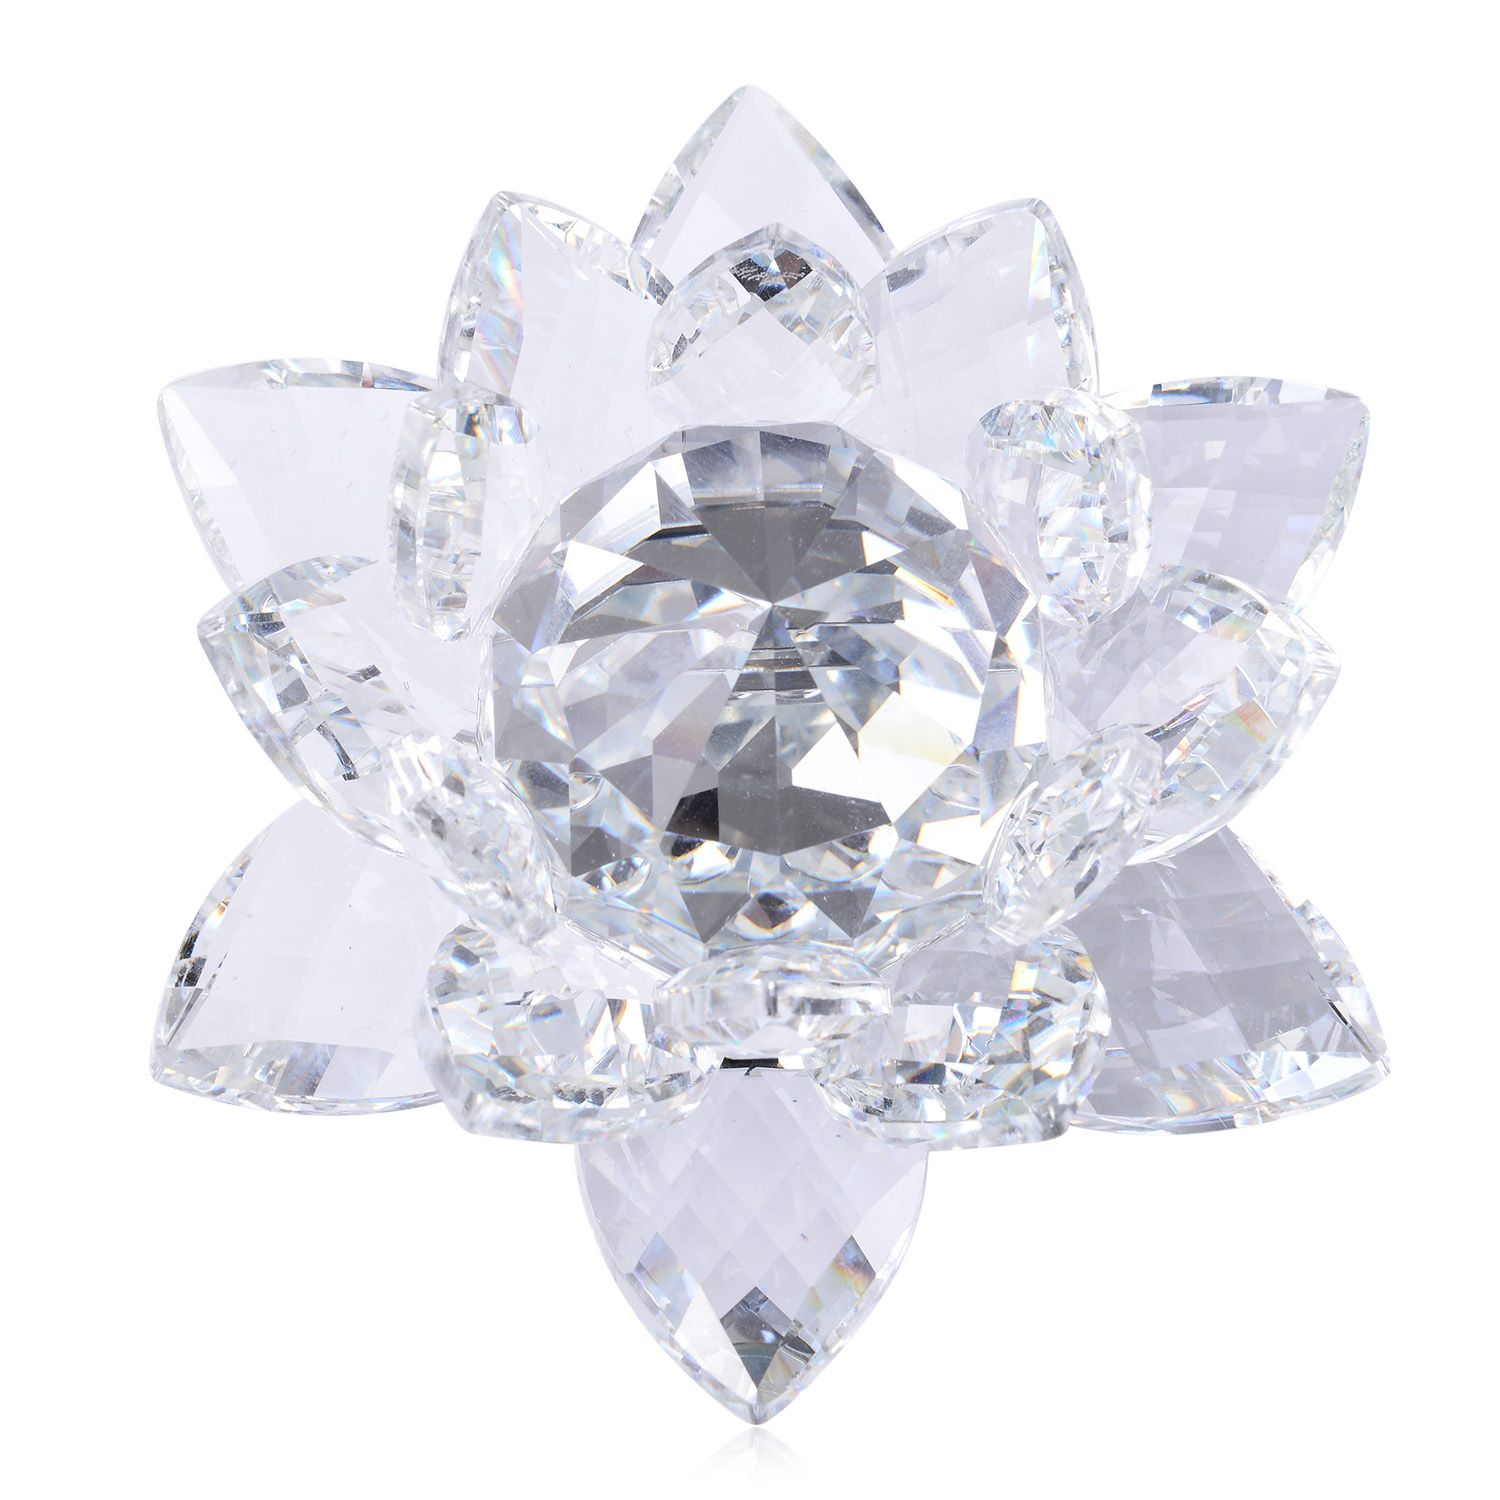 Crystal Decorations For Home Home Decorative Crystal Lotus Flower Tgw 2345 000 Cts